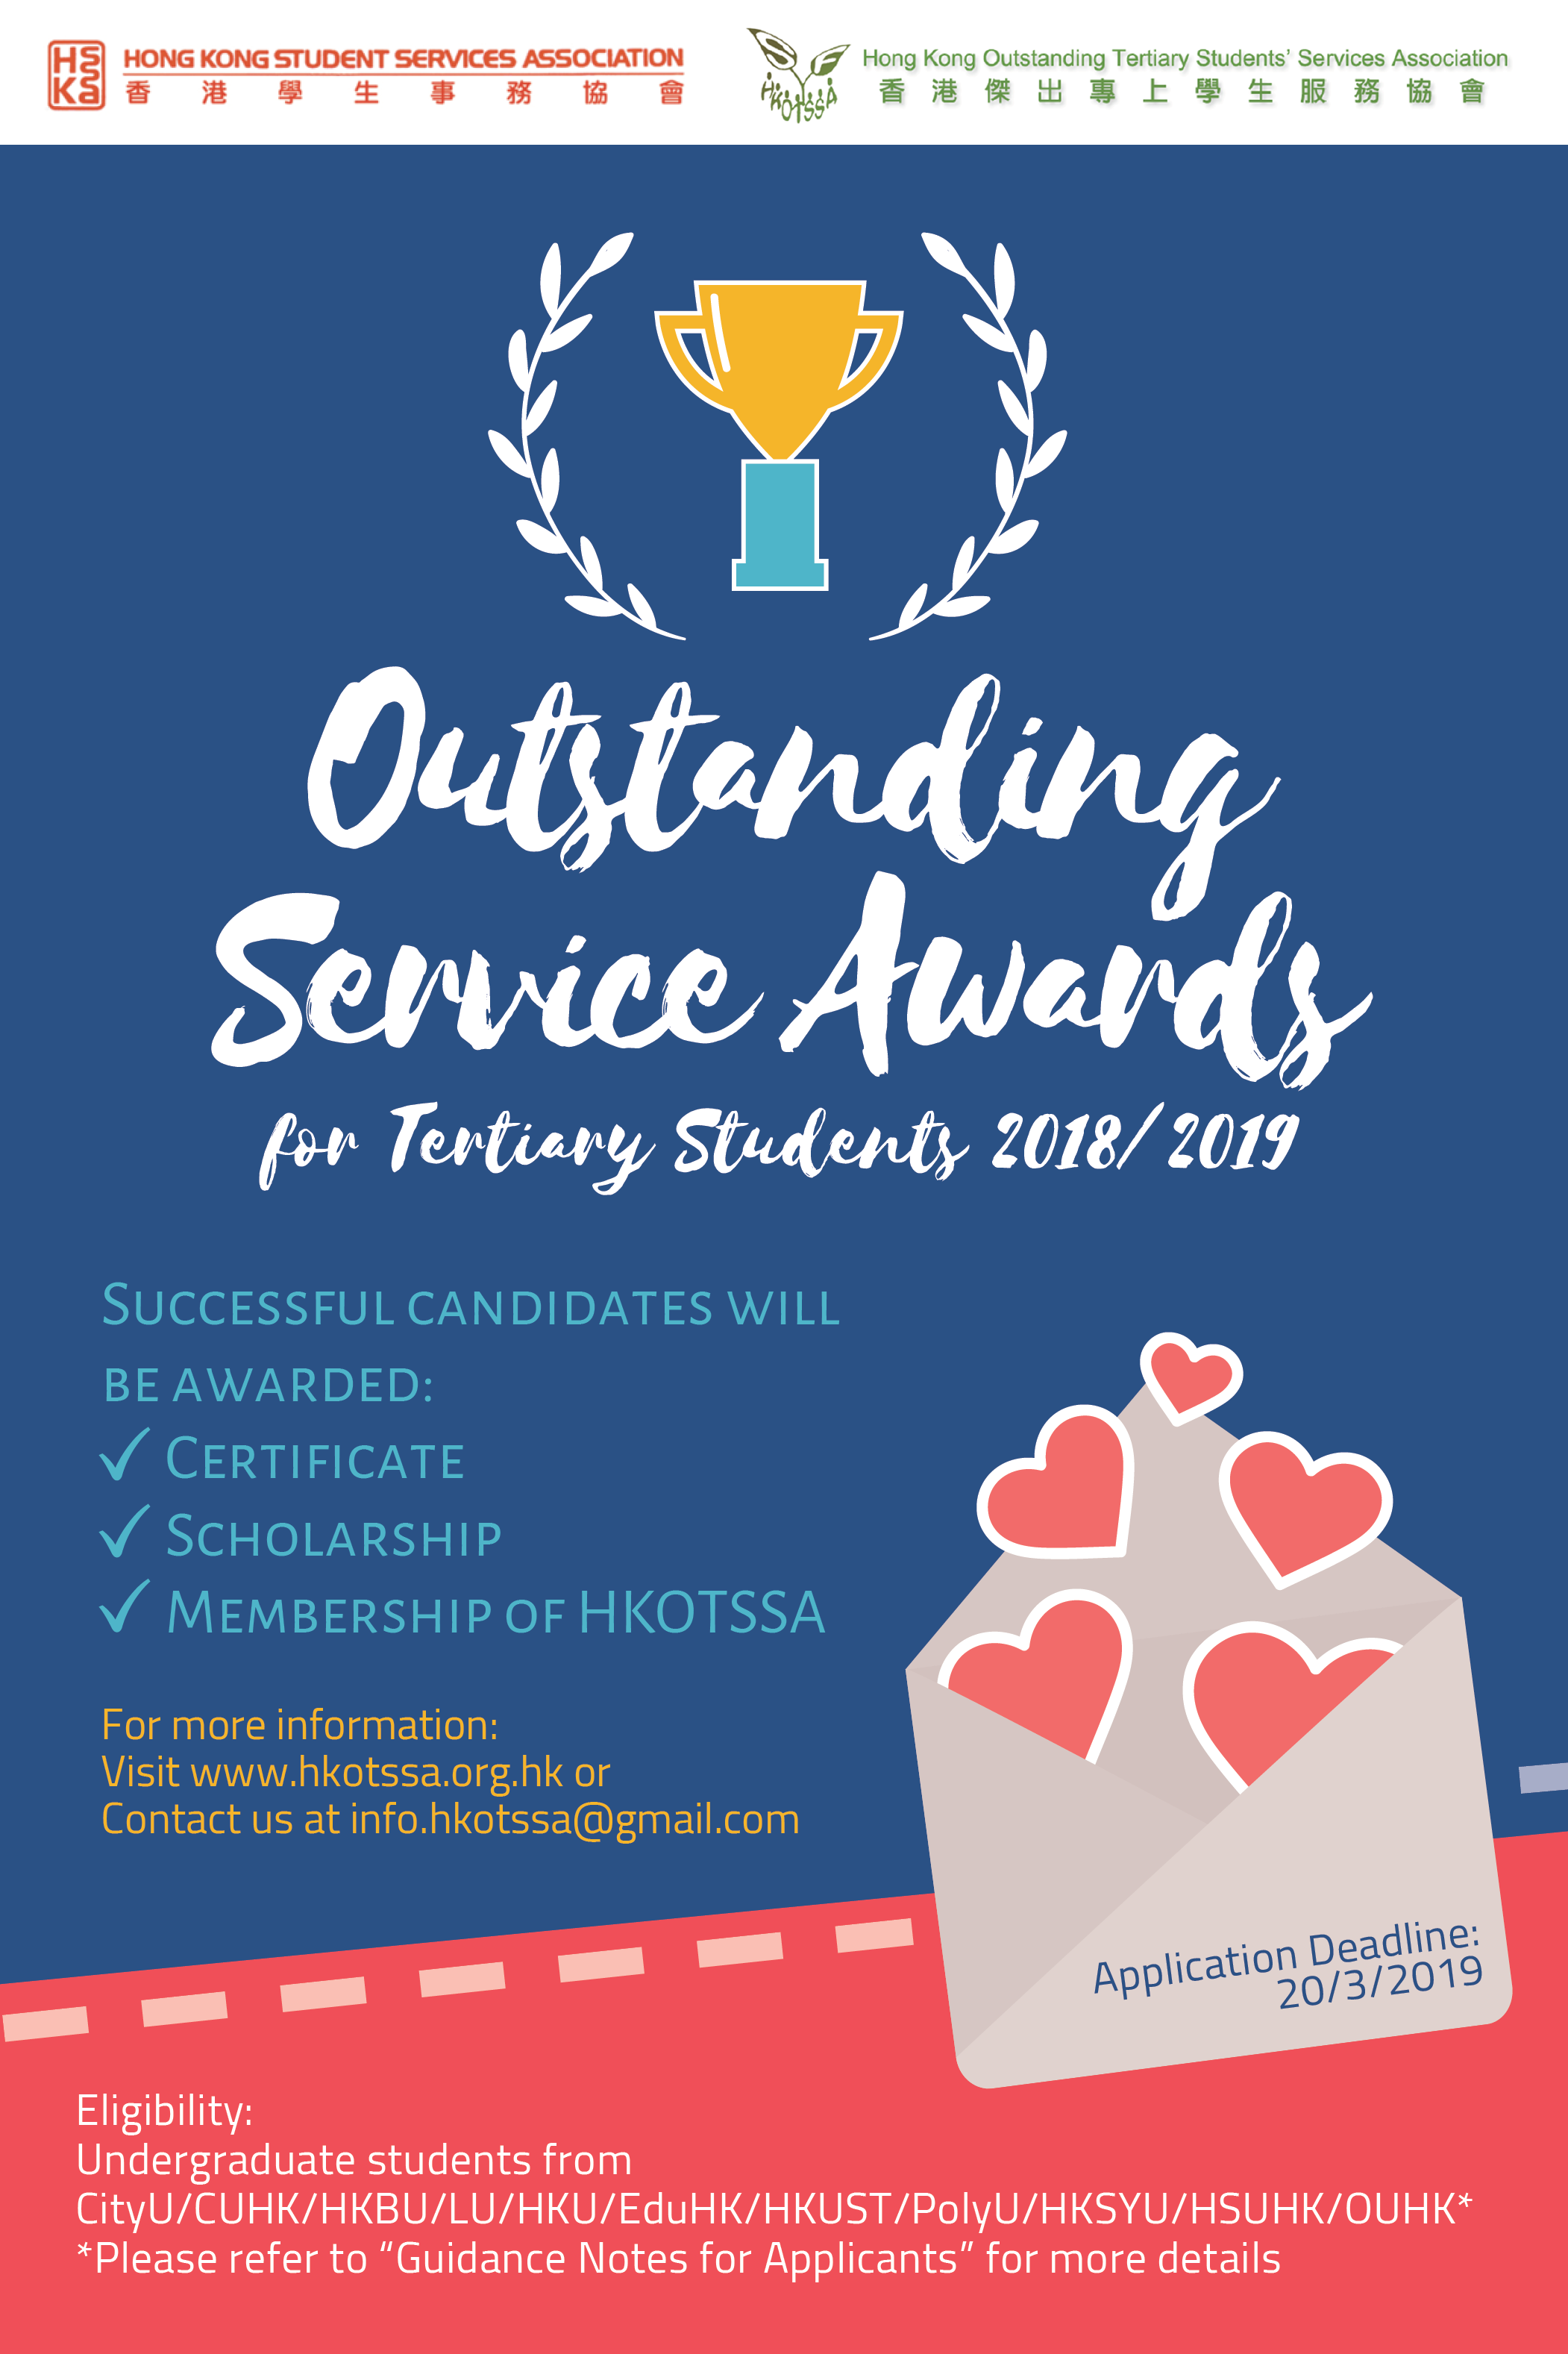 Outstanding Service Awards for Tertiary Students | The Hong Kong